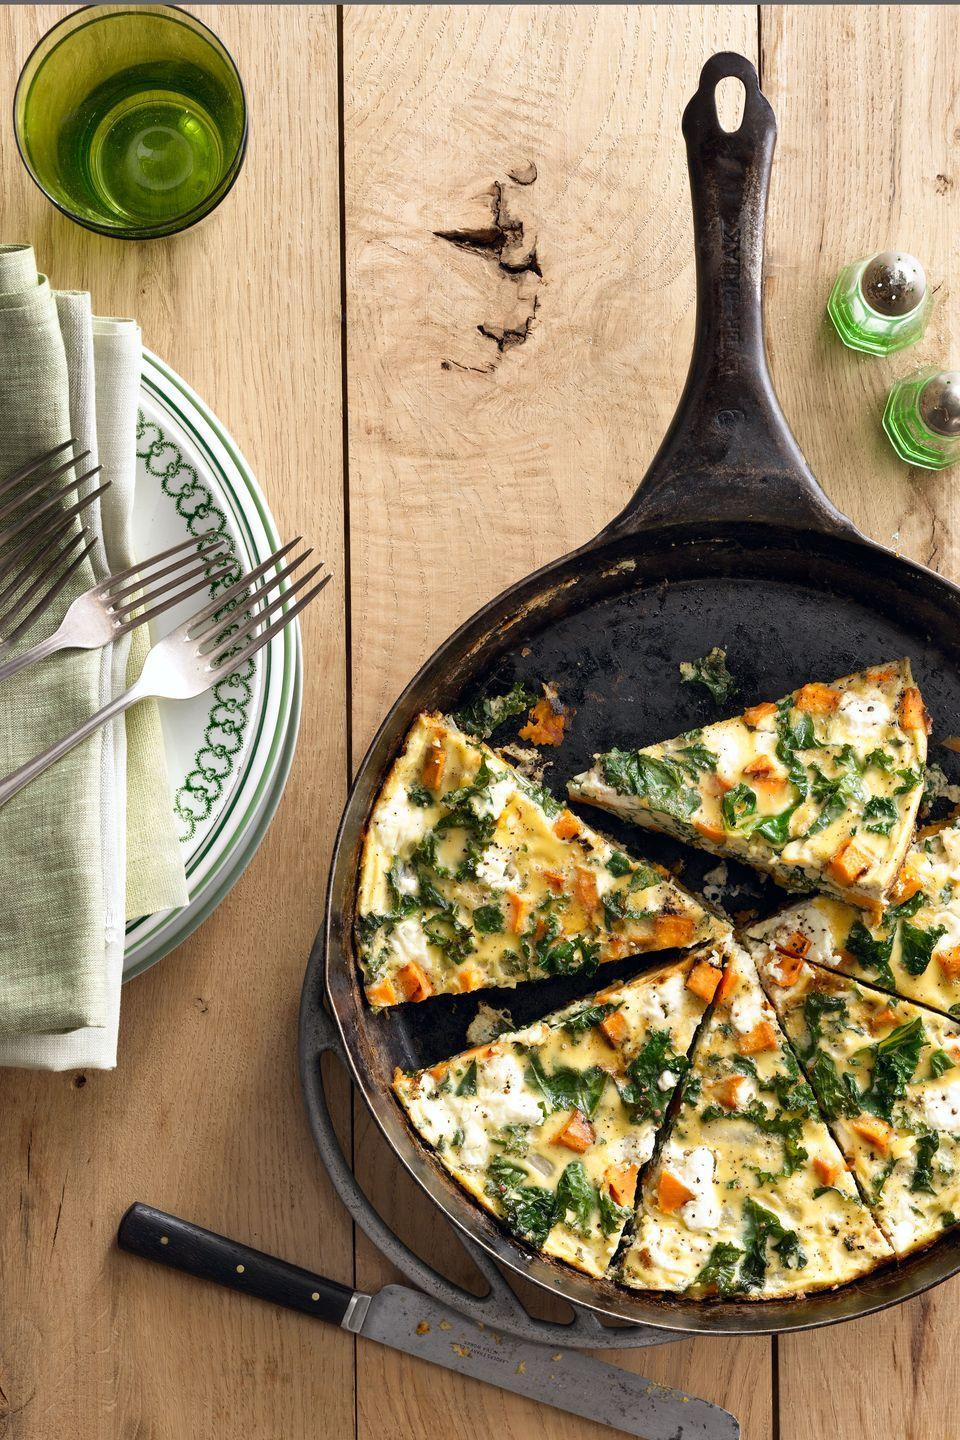 """<p>A delicious and easy frittata that is perfect for breakfast, lunch, or dinner.</p><p><strong><a href=""""https://www.countryliving.com/food-drinks/recipes/a5502/sweet-potato-kale-frittata-recipe-clx0914/"""" rel=""""nofollow noopener"""" target=""""_blank"""" data-ylk=""""slk:Get the recipe"""" class=""""link rapid-noclick-resp"""">Get the recipe</a>.</strong></p>"""